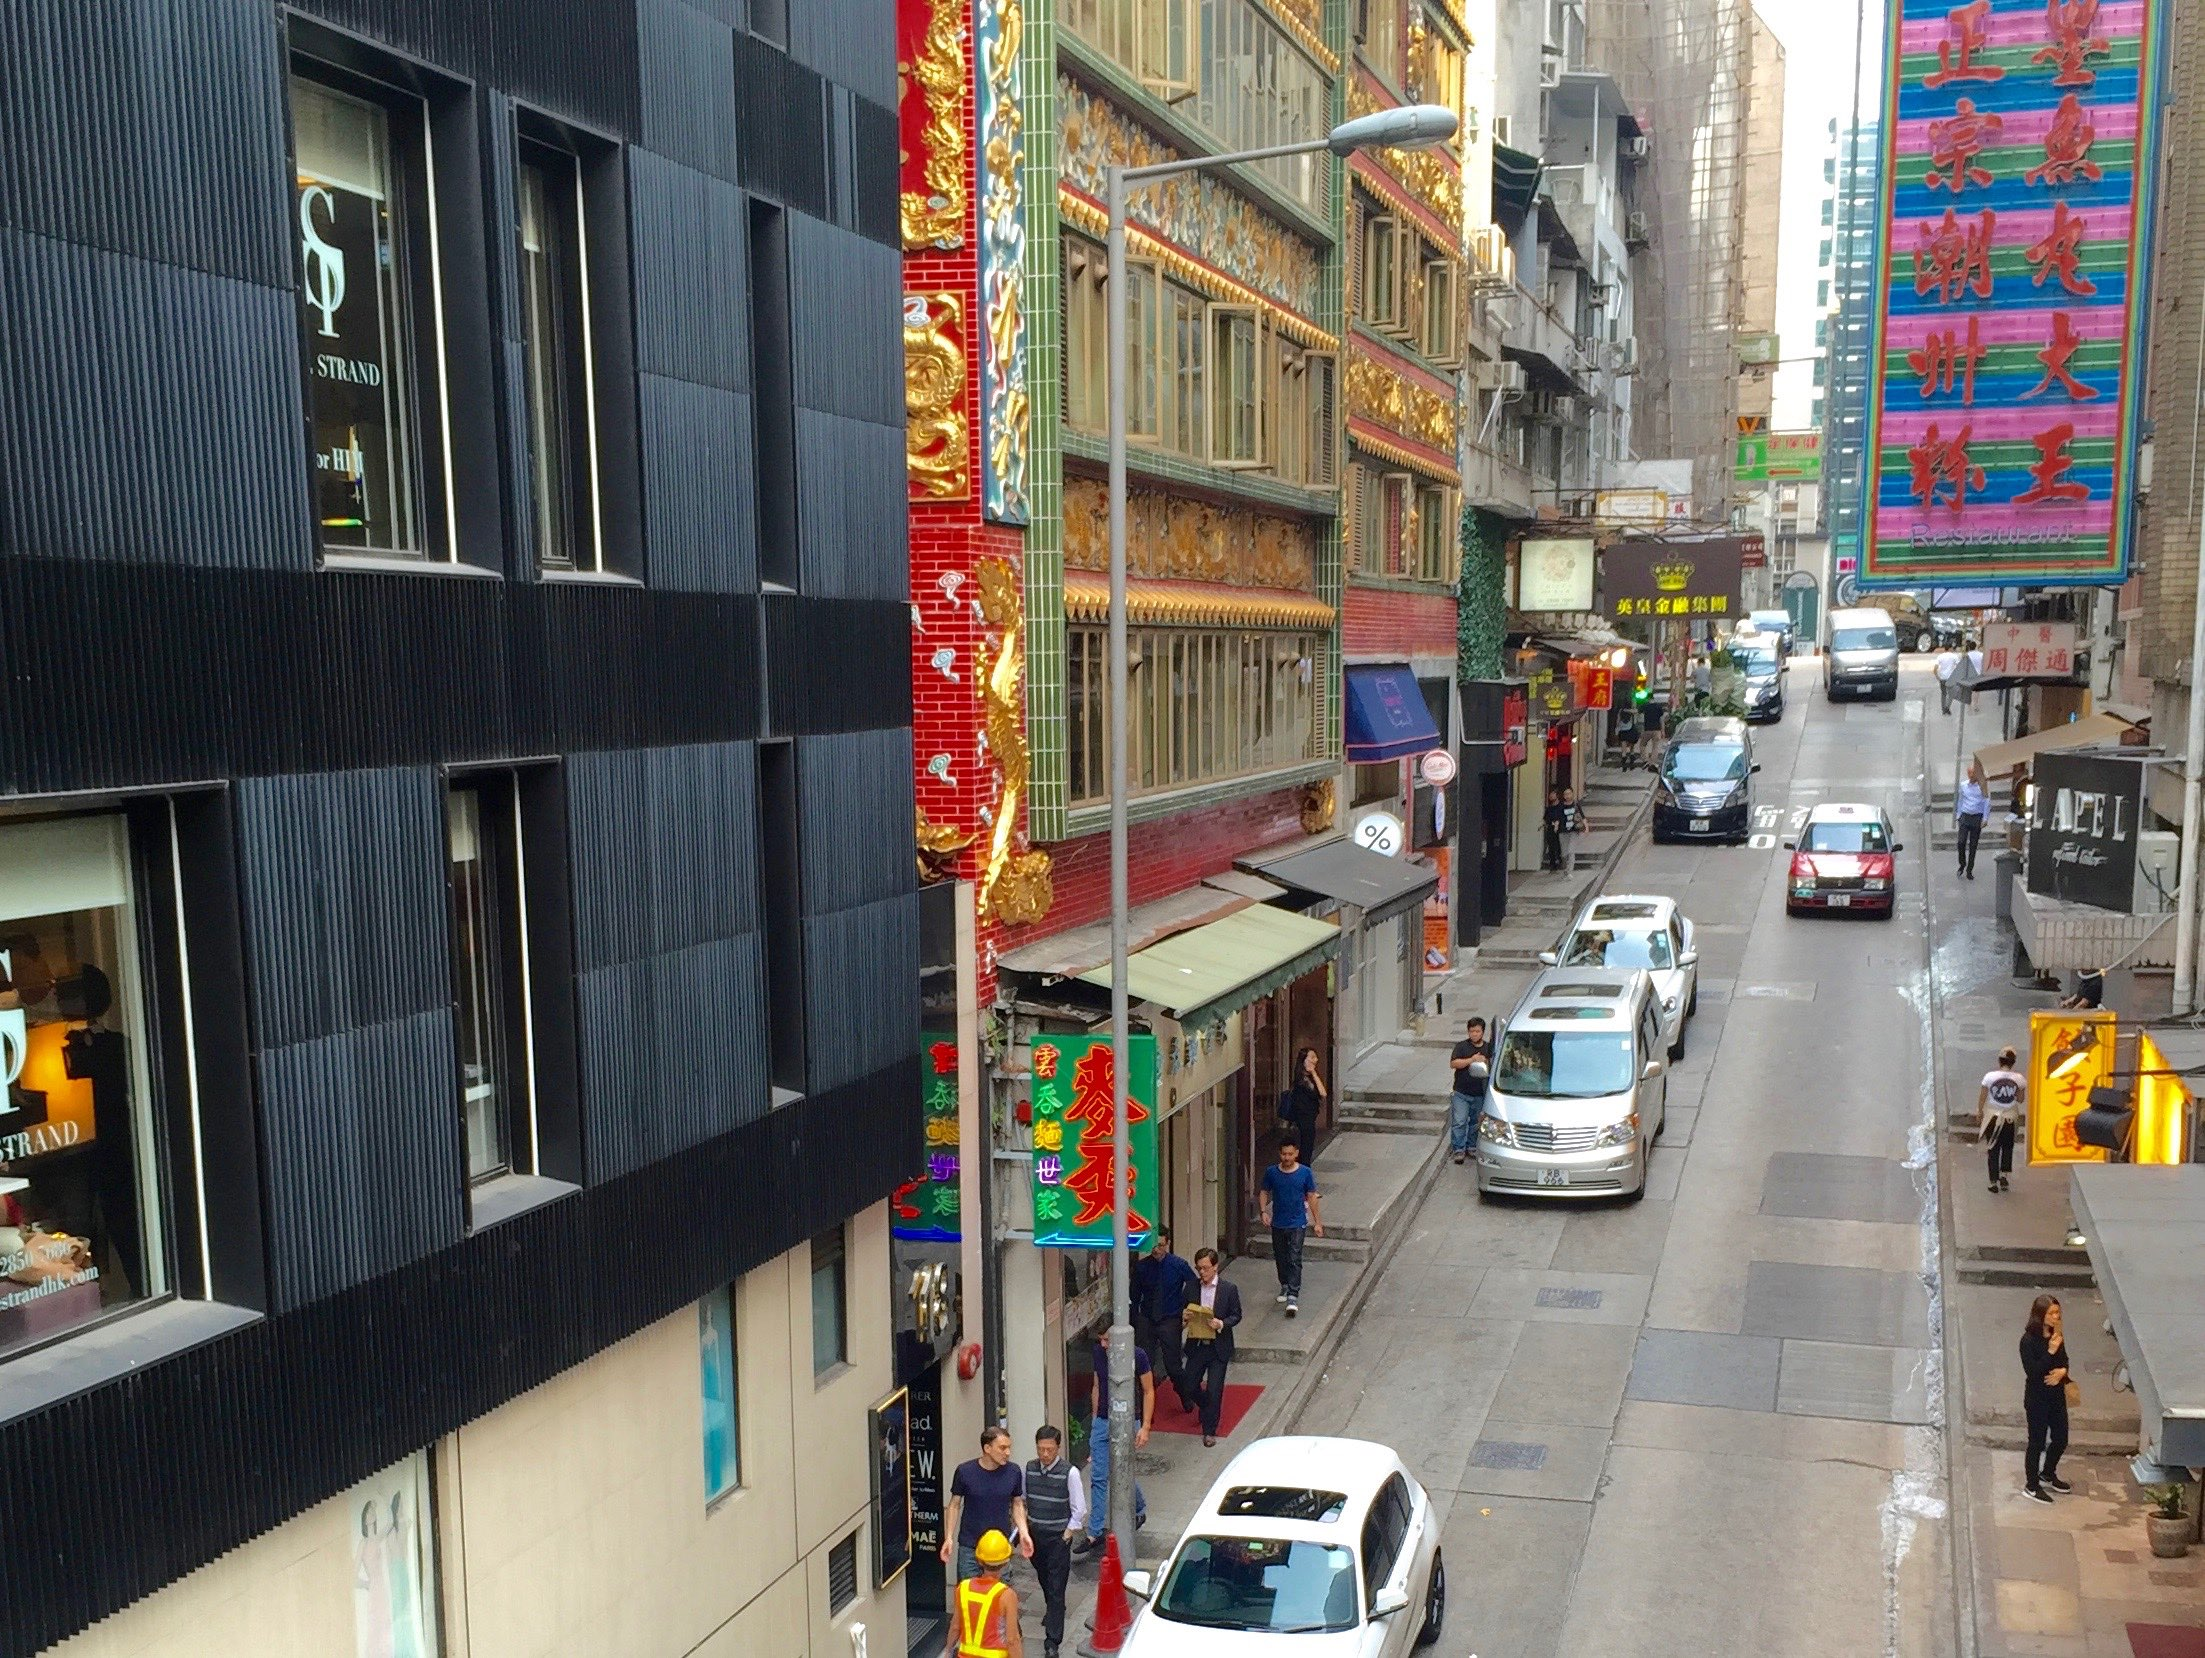 Restaurants, cafes and noodle shops packed on Wellington Street Central